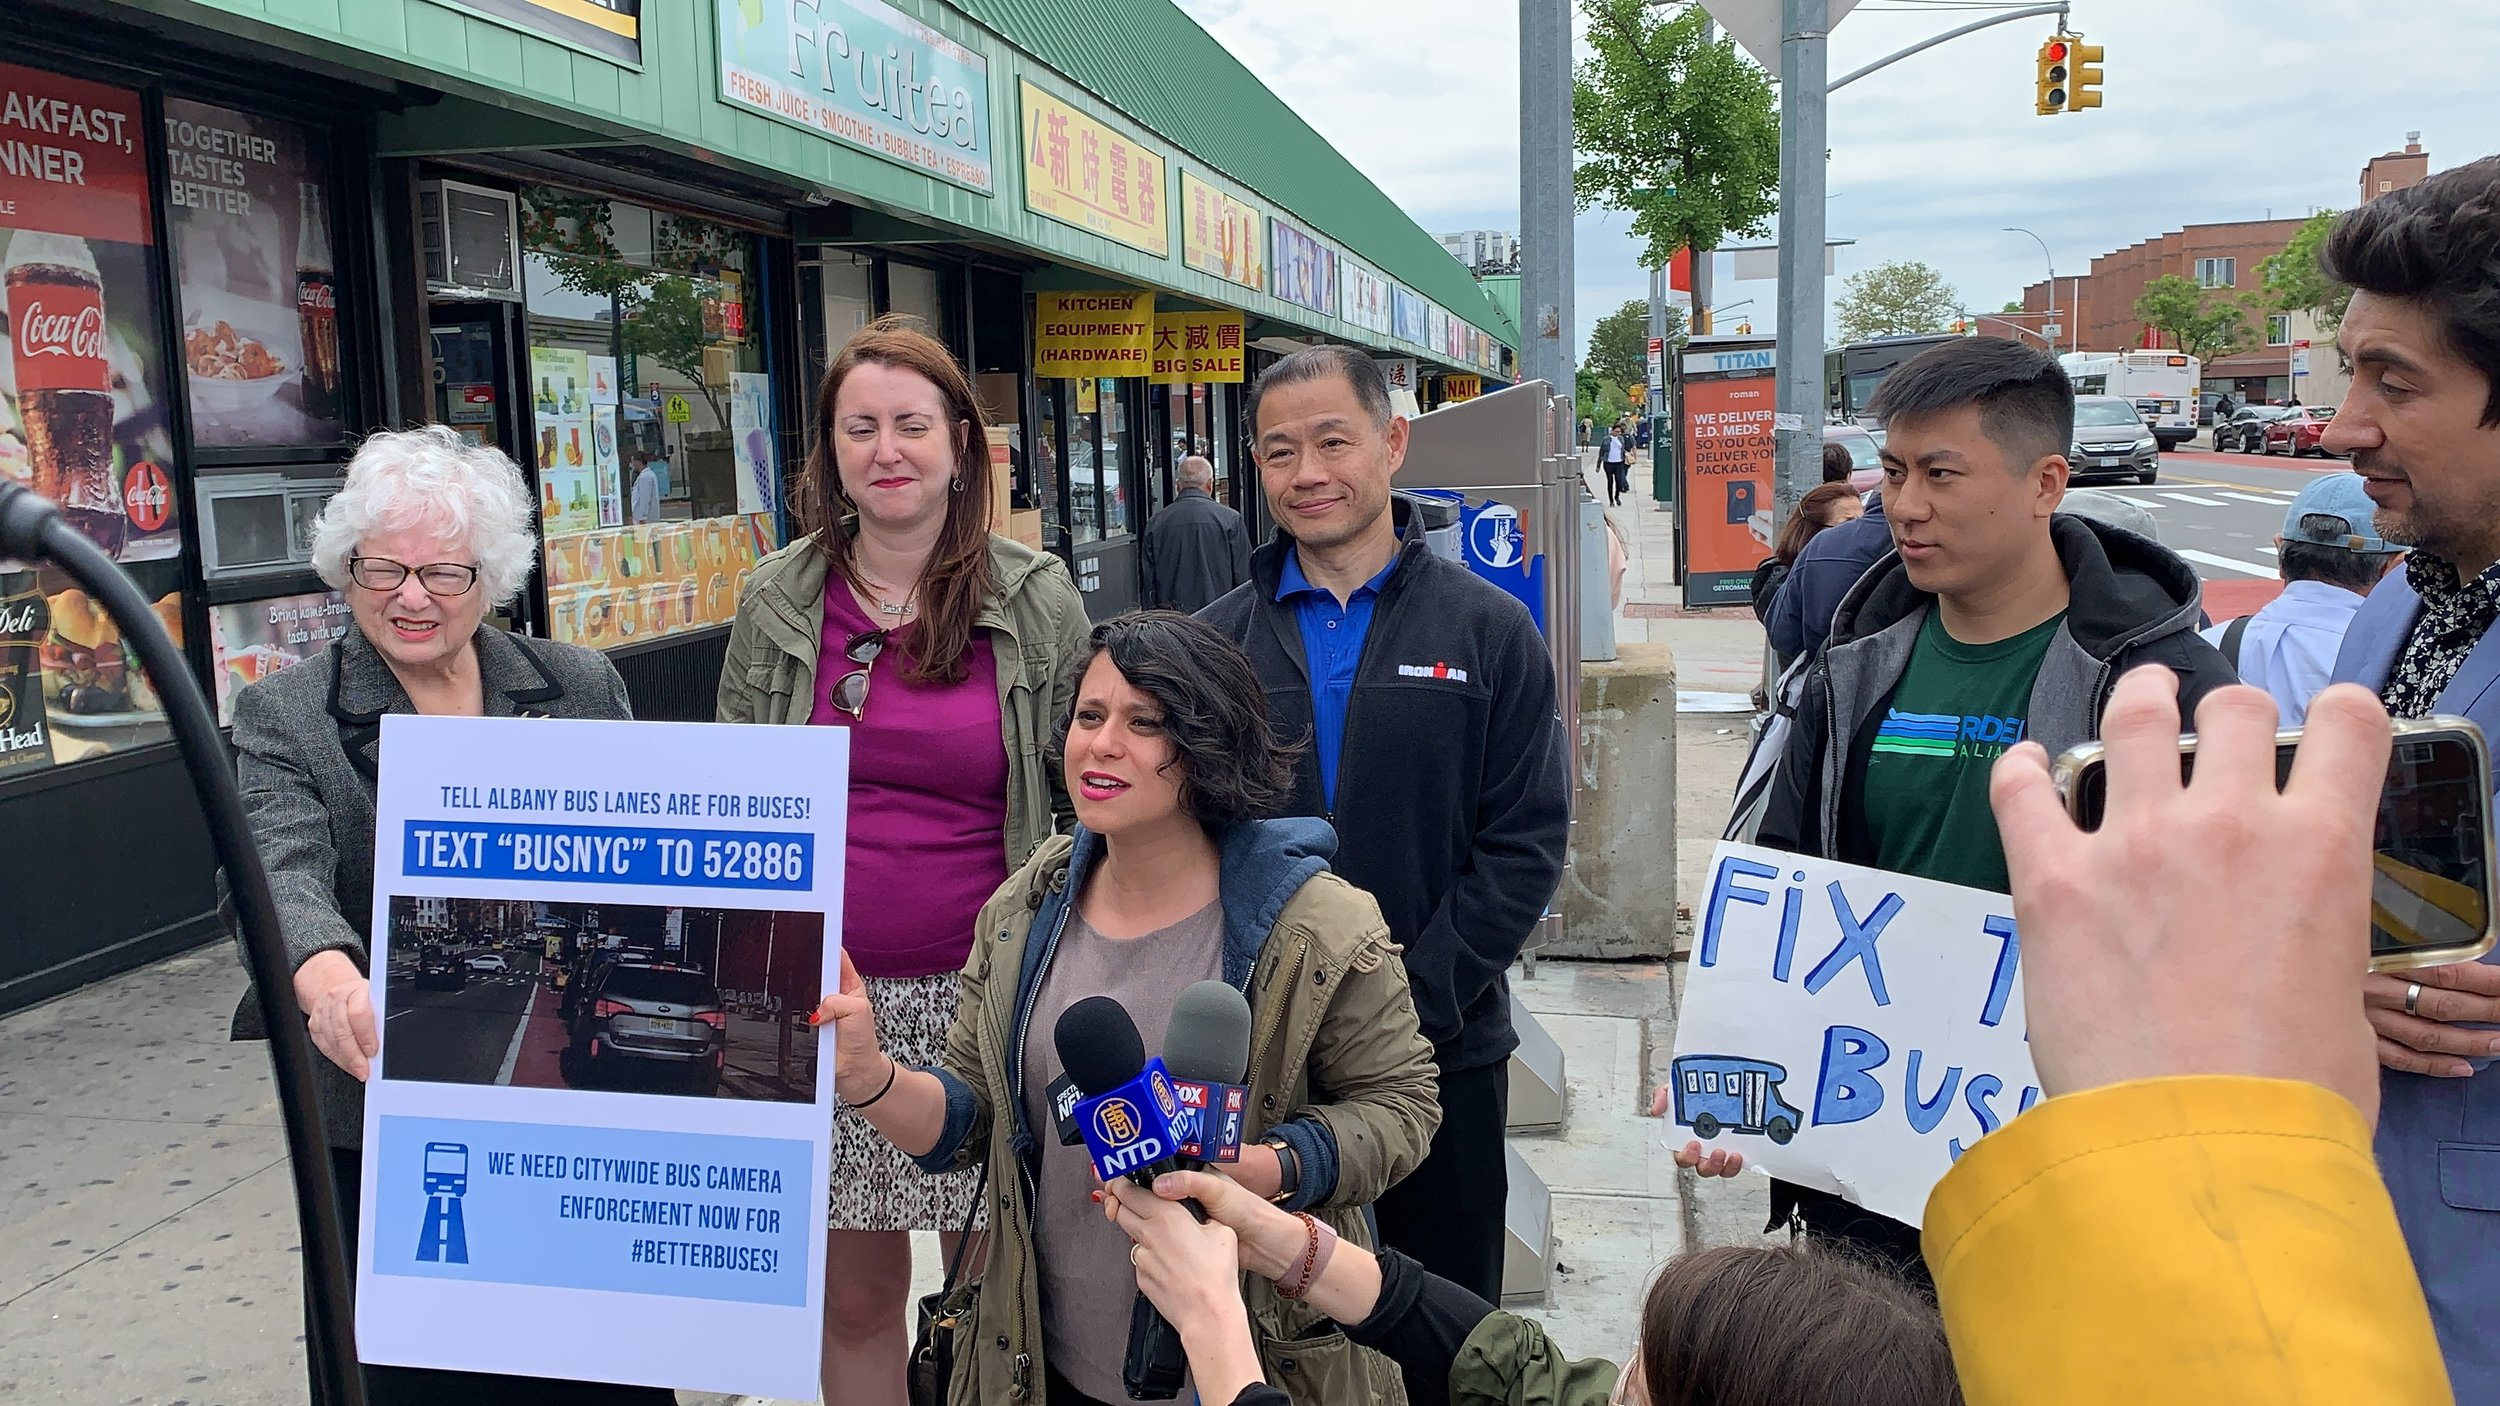 State Sen. Toby Ann Stavisky (left) and State Sen. John Liu (center) join transit advocates at a rally for Queens bus lane enforcement. Photo courtesy of Jorge Muniz/Riders Alliance.